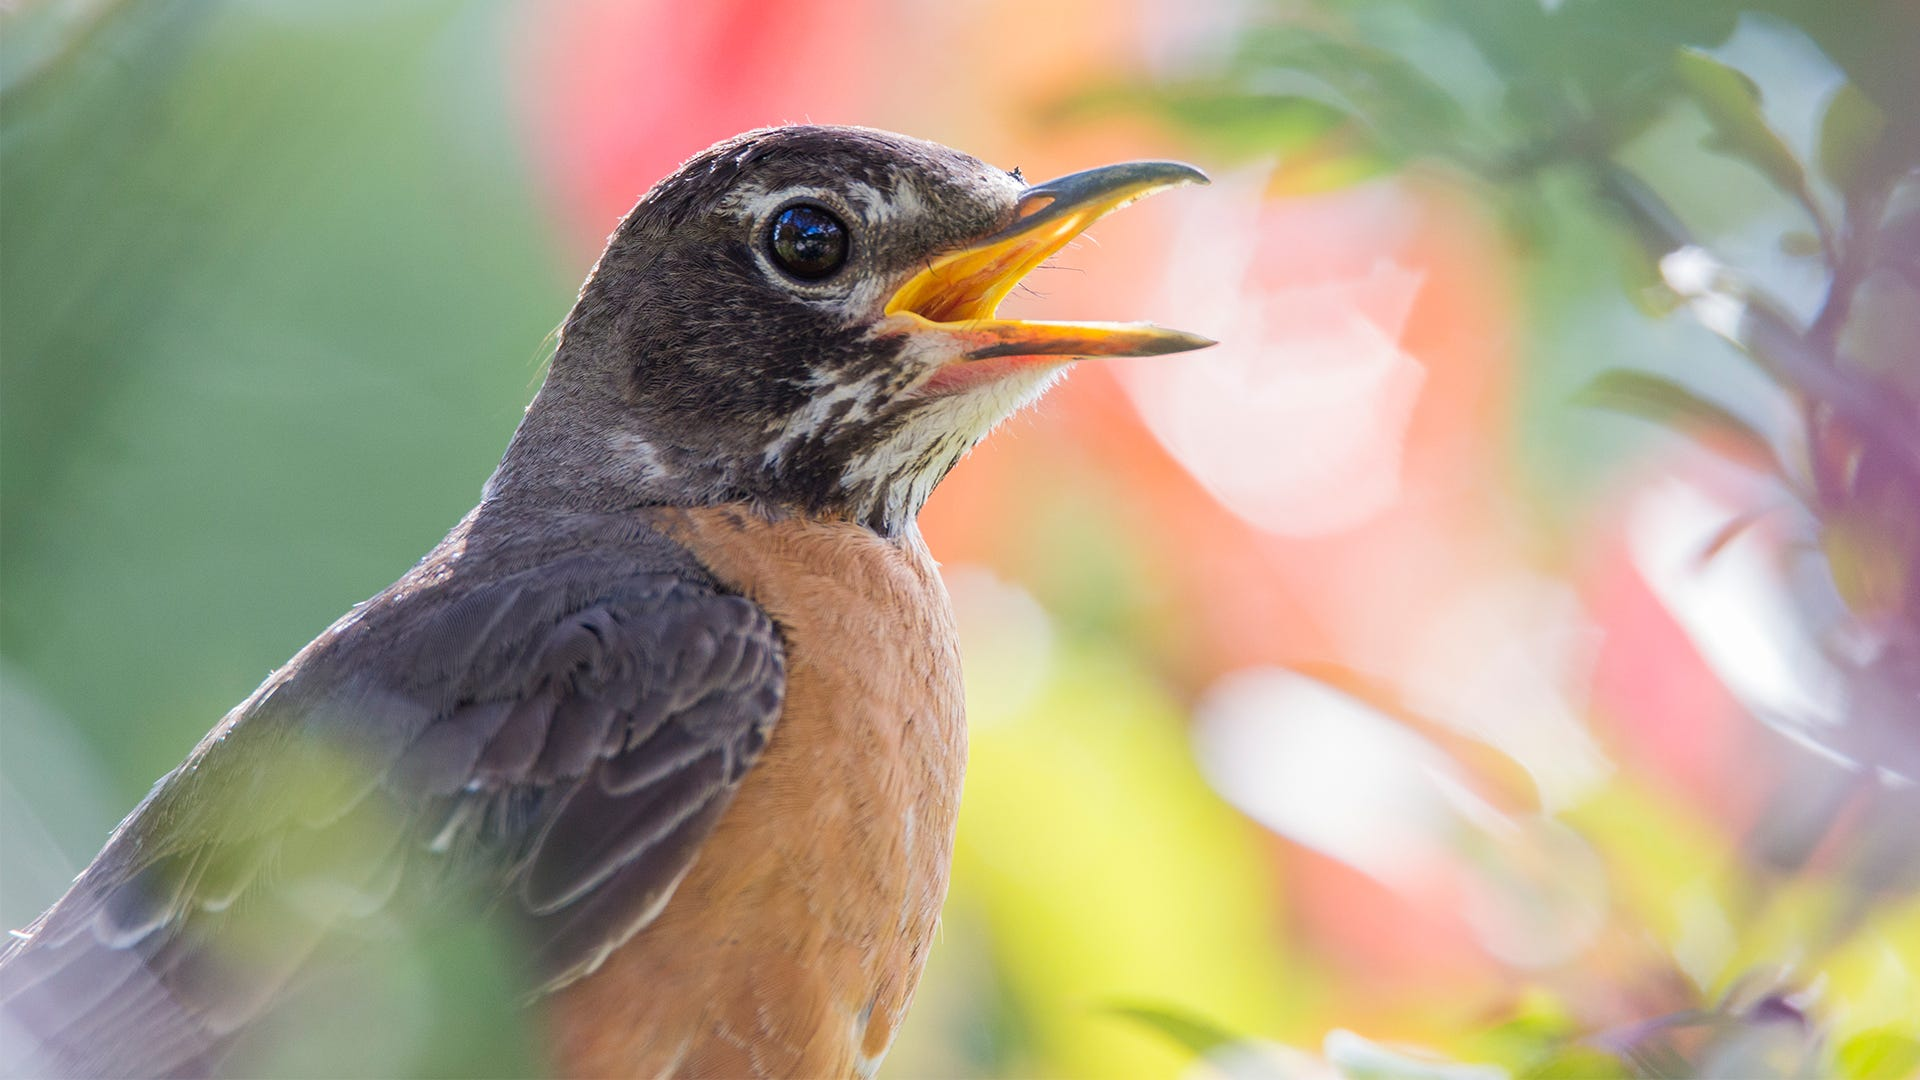 American Robin: Top 10 Most Interesting Facts